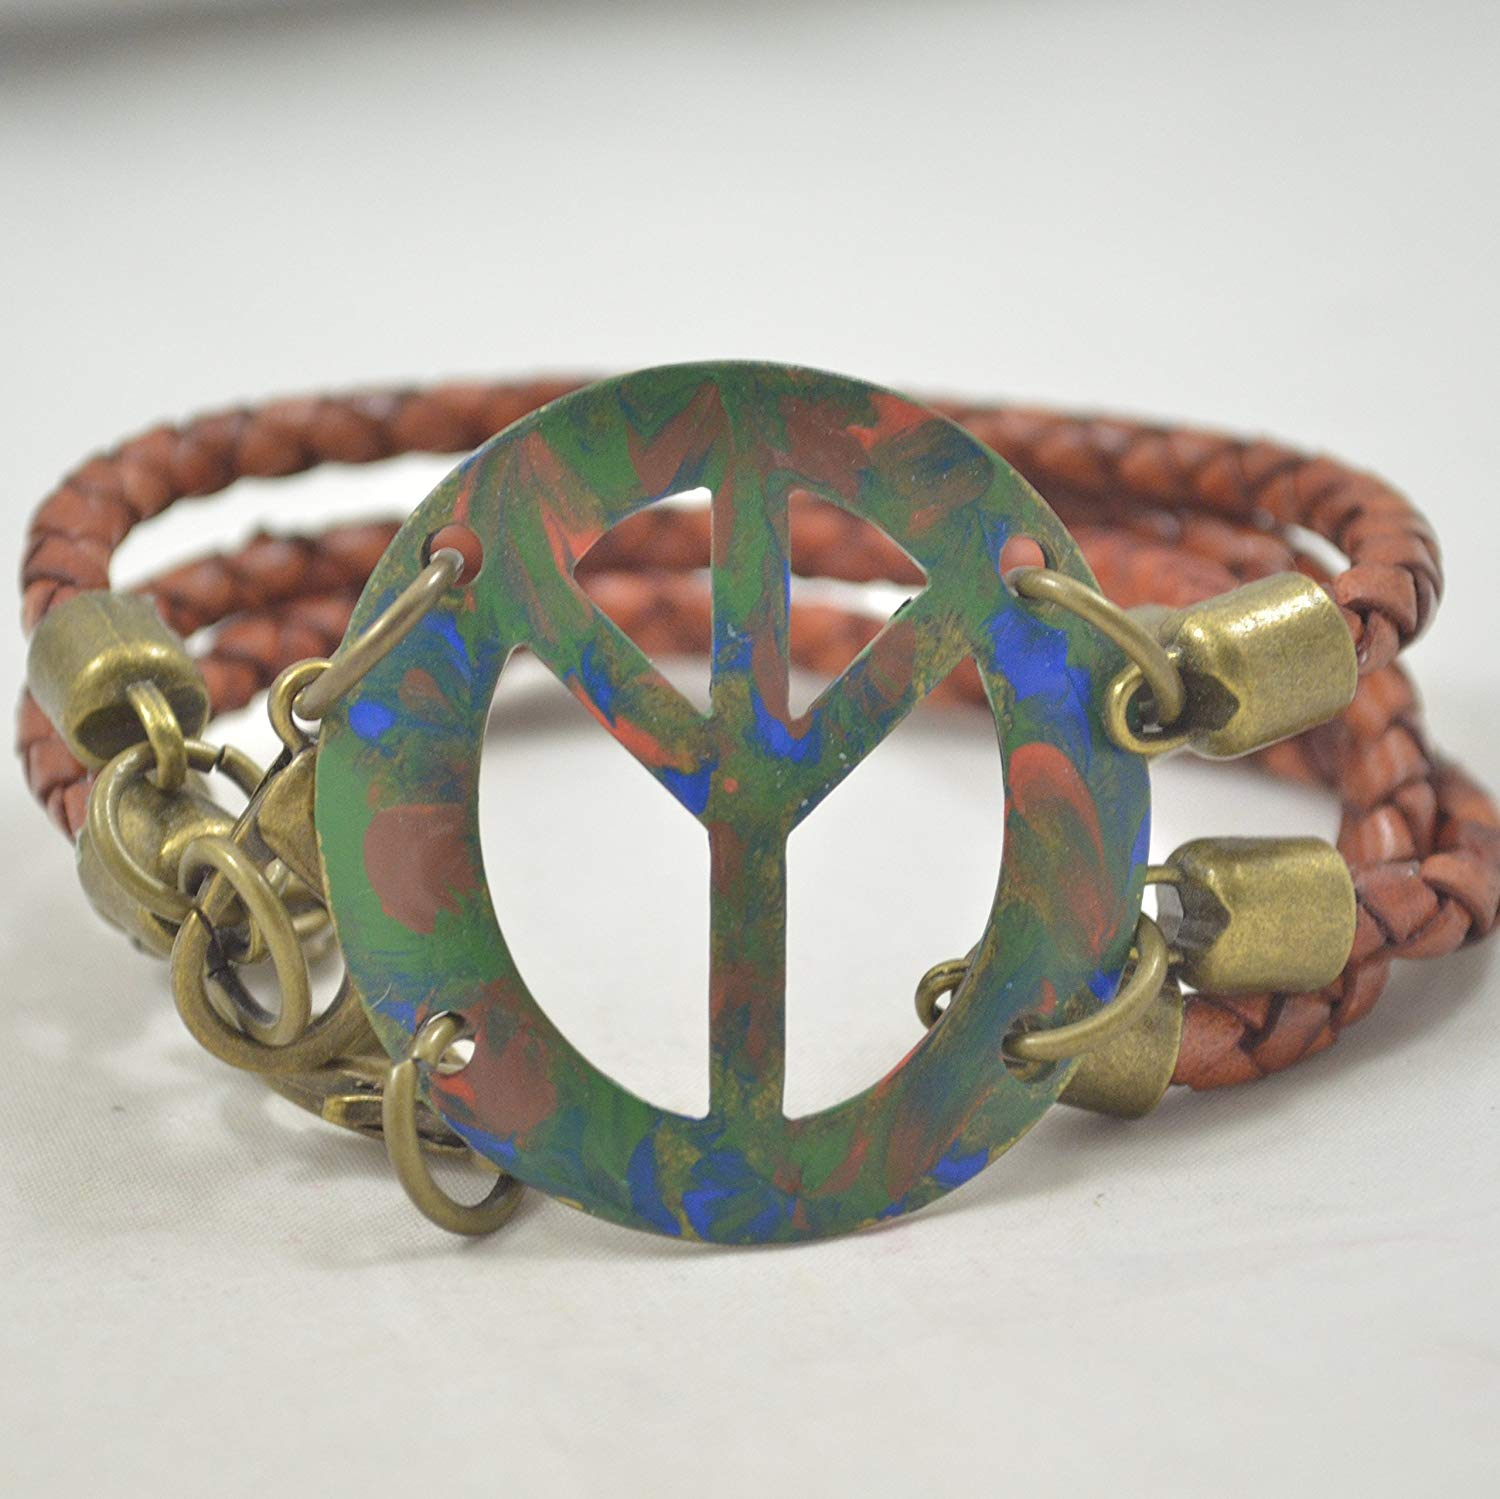 Hand-Painted Peace Sign Leather and Metal Bracelet